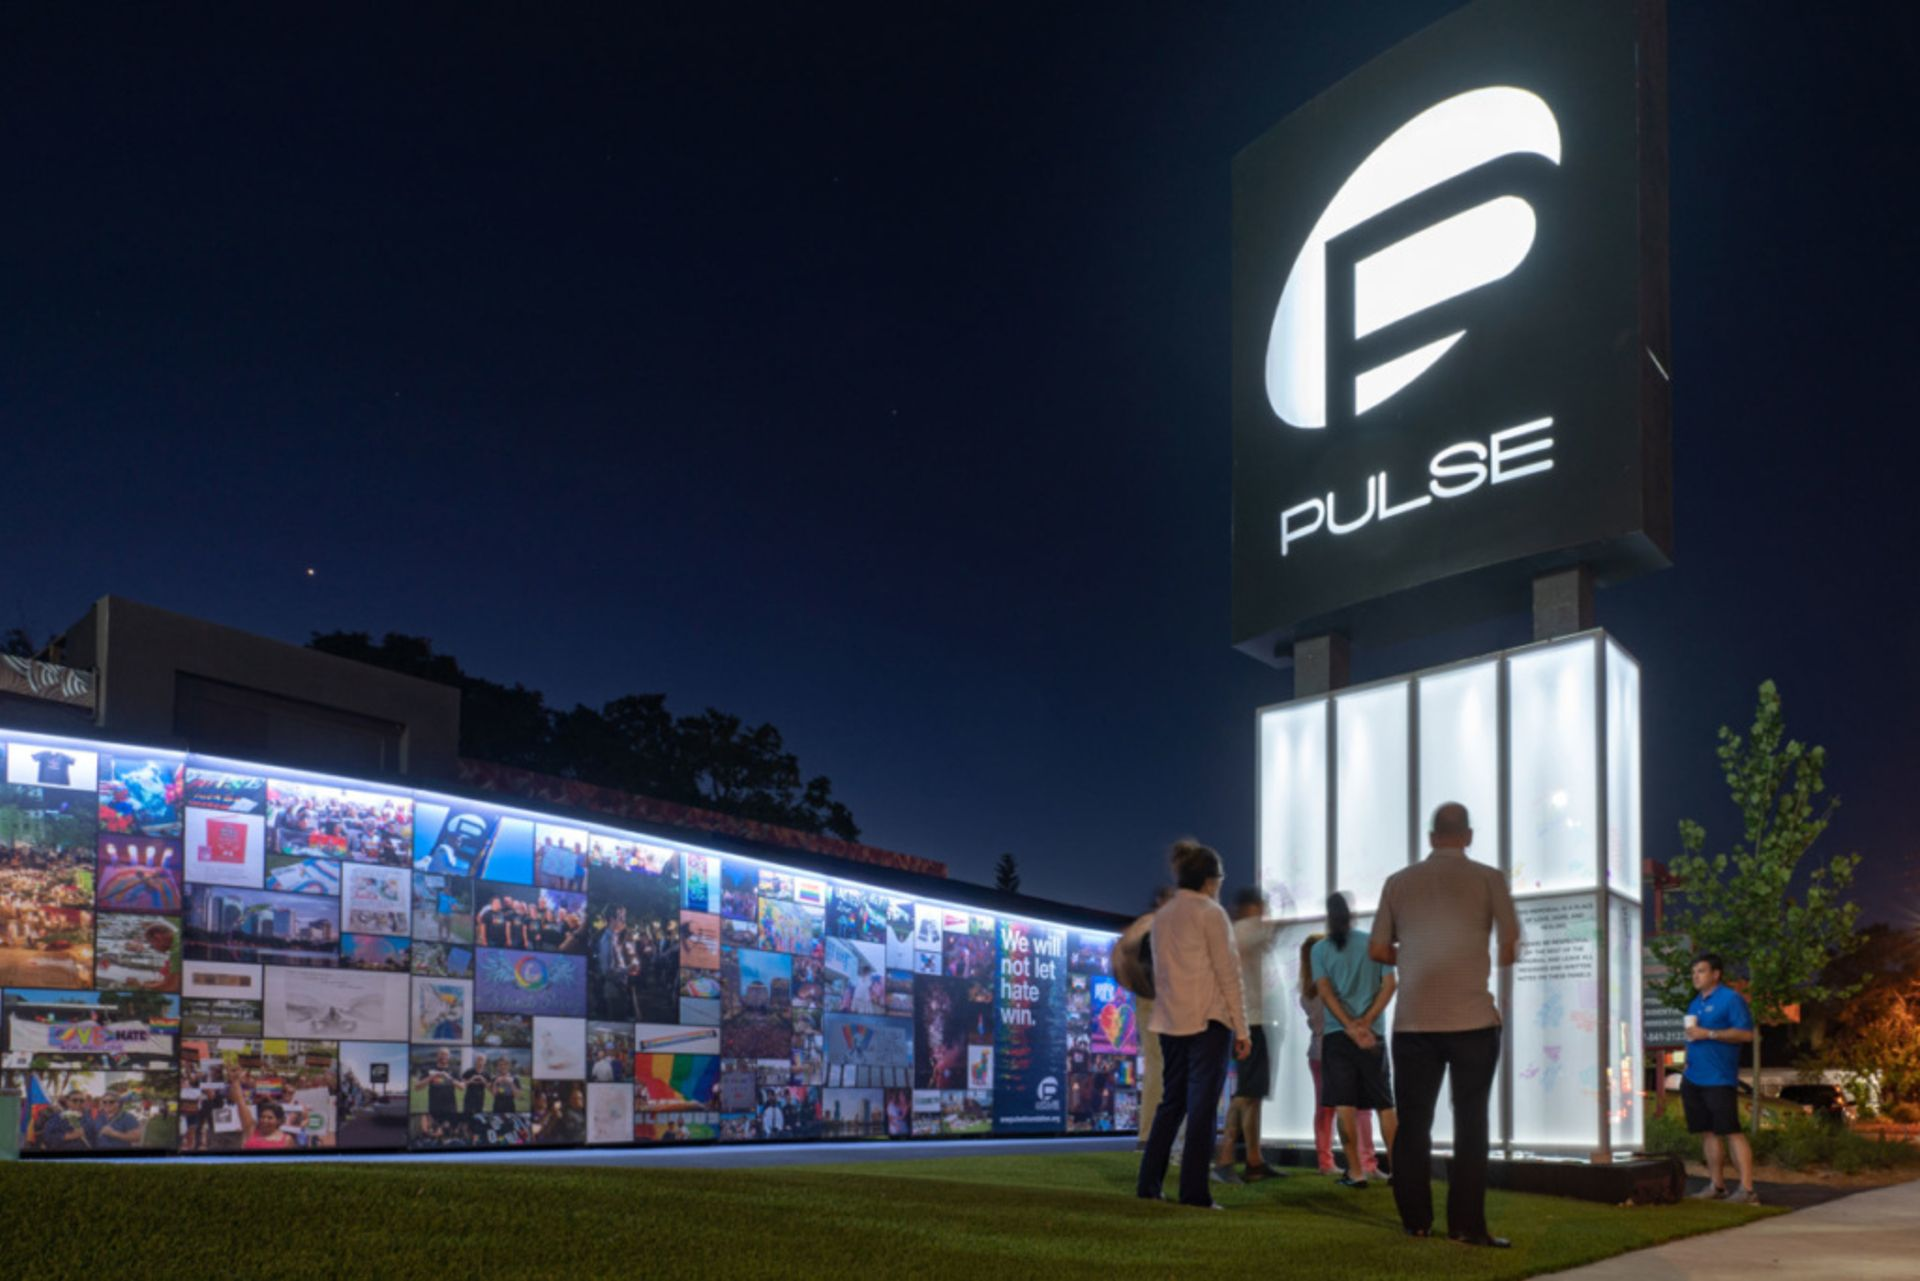 High-profile architecture firms, artists, and landscape architects were shortlisted this year to design a memorial and museum at the site of the Pulse nightclub shooting in Orlando, Florida Courtesy onePULSE Foundation